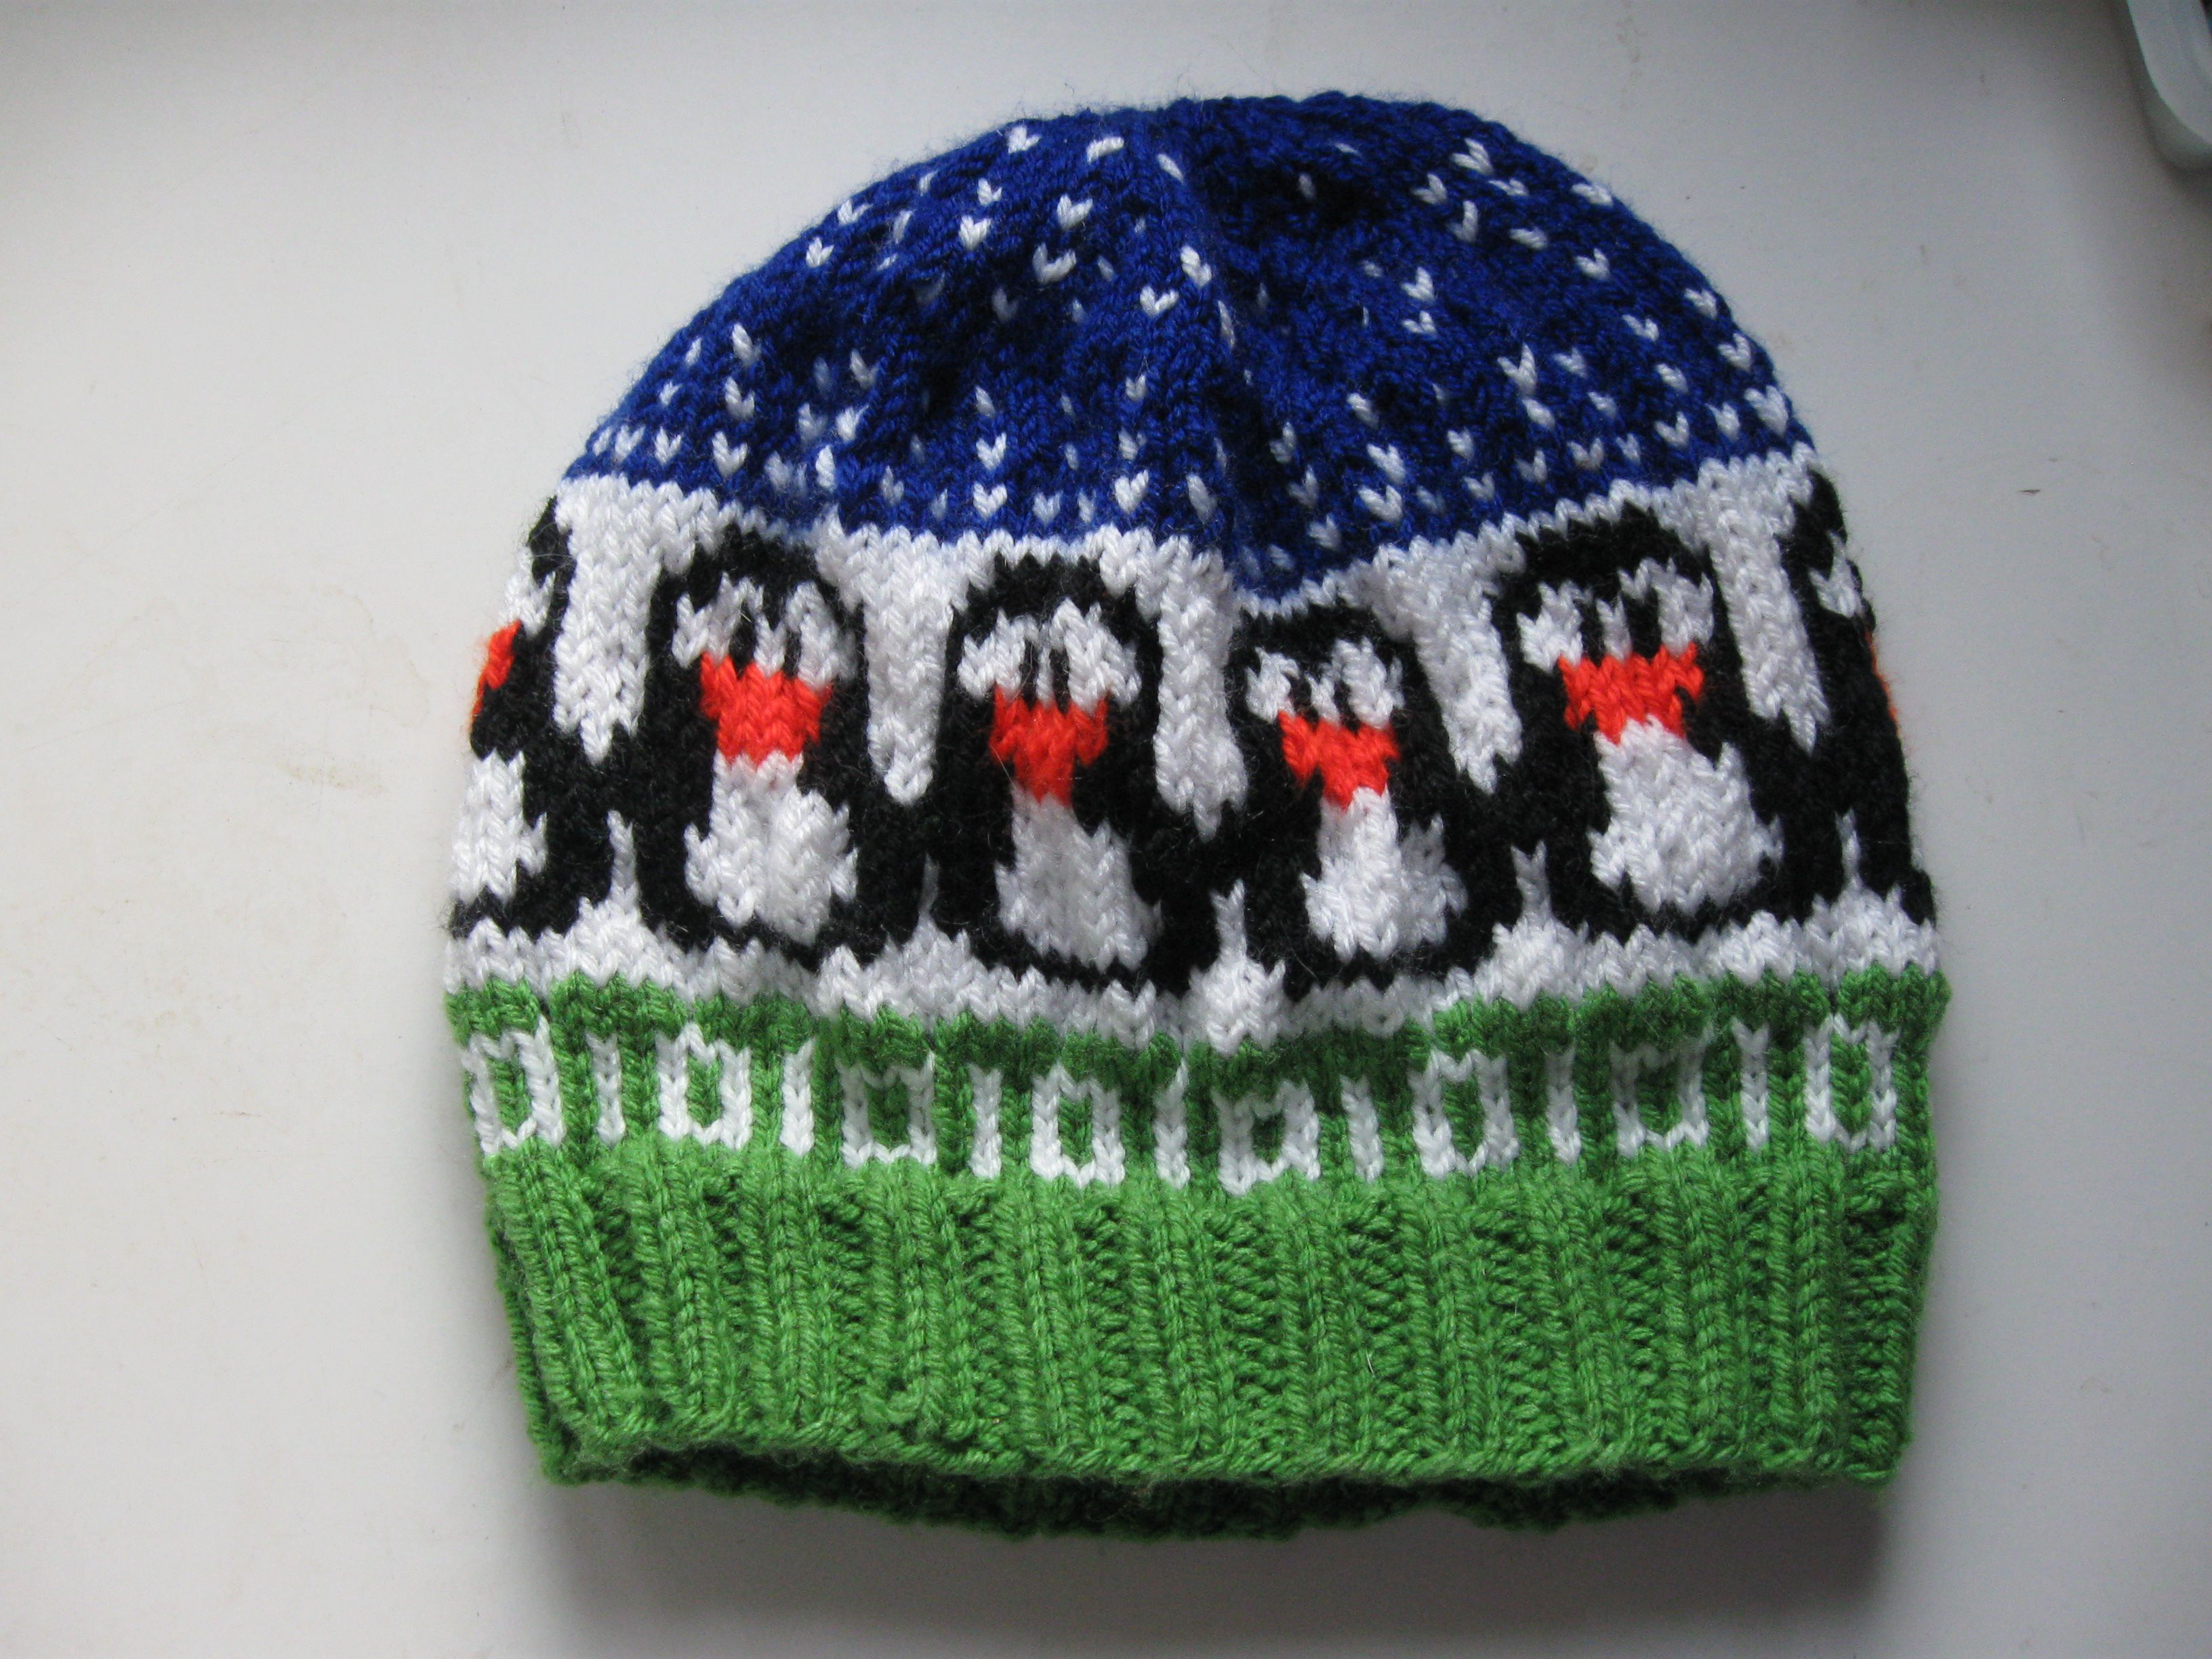 One of my penguin hats. Knitted. | pics | Pinterest | Penguin hat ...